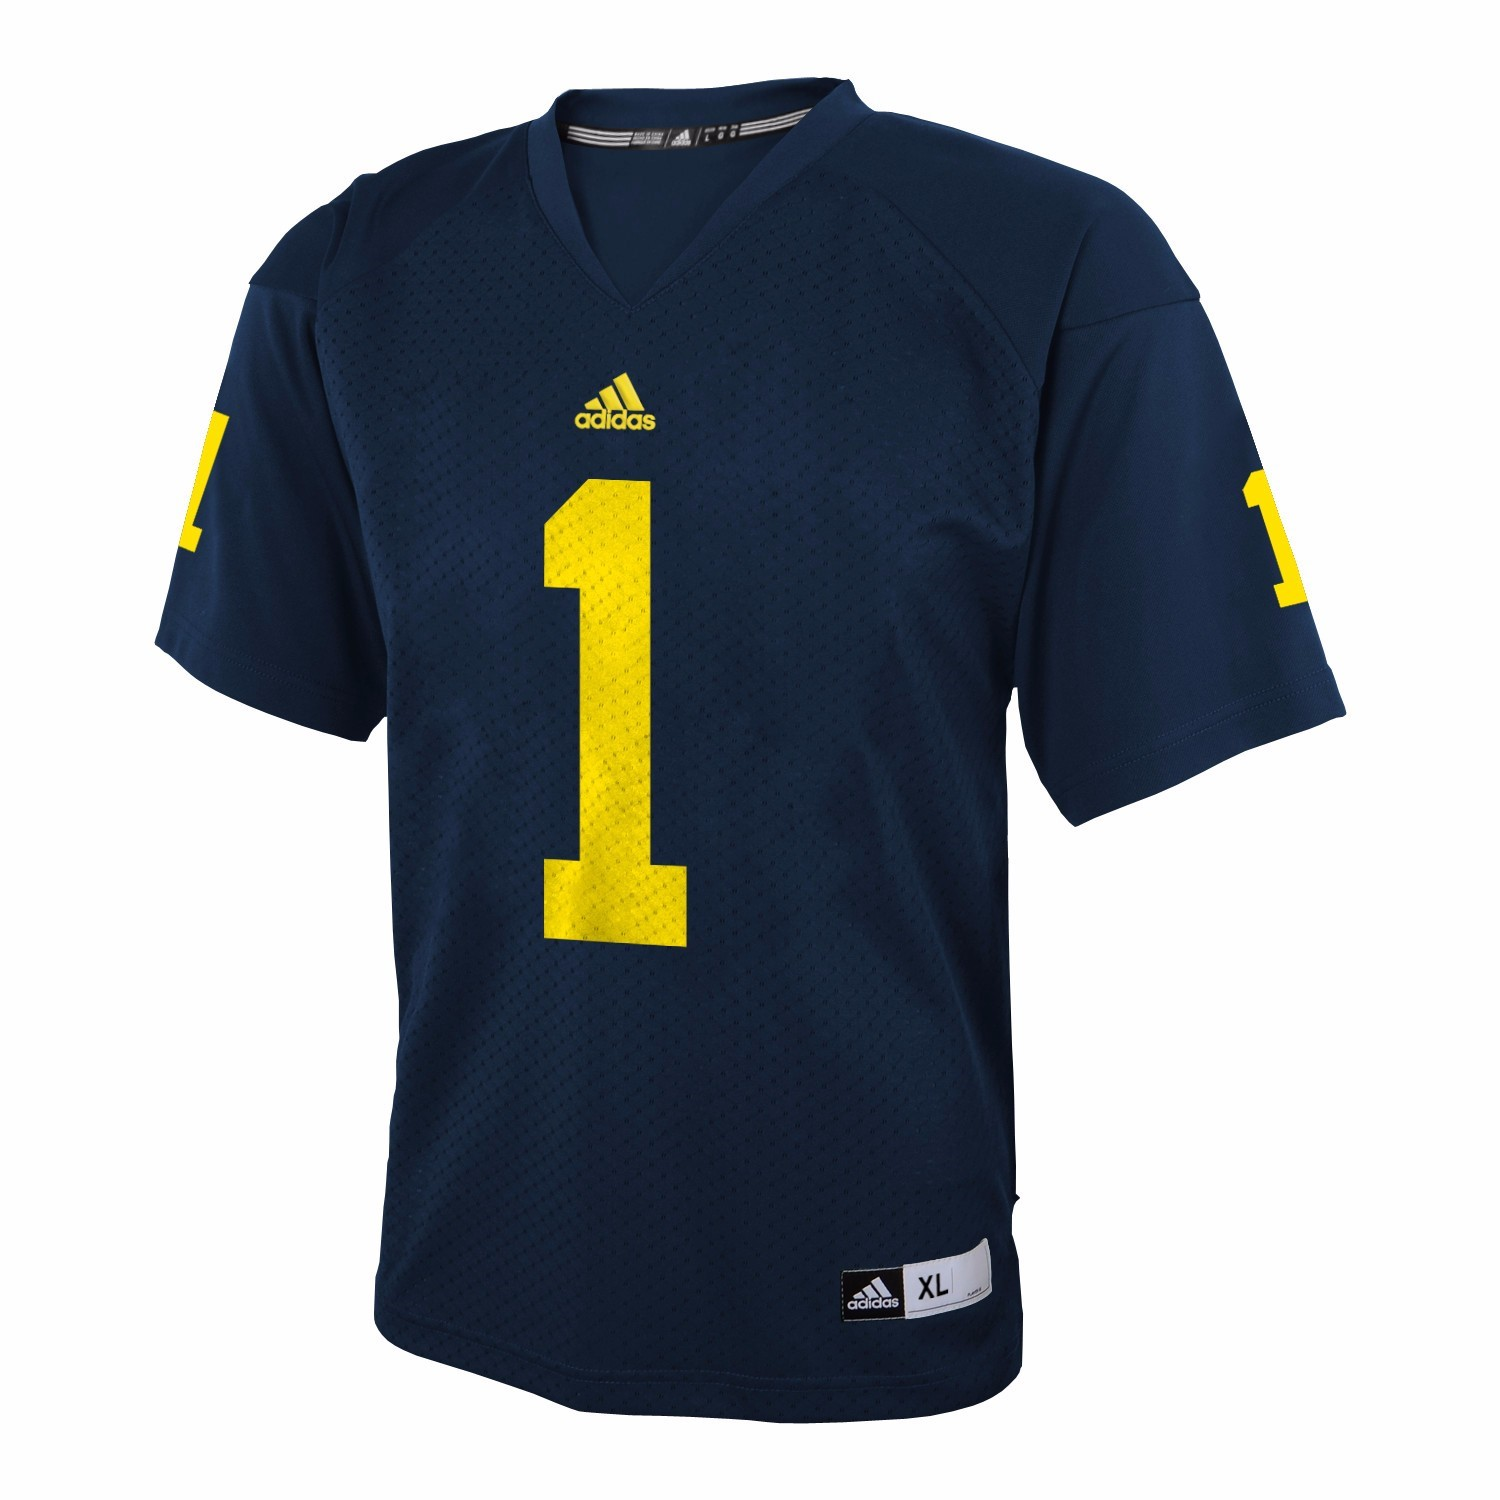 Michigan Wolverines NCAA Adidas Navy Blue Official Home #1 Replica Football Jersey For Youth